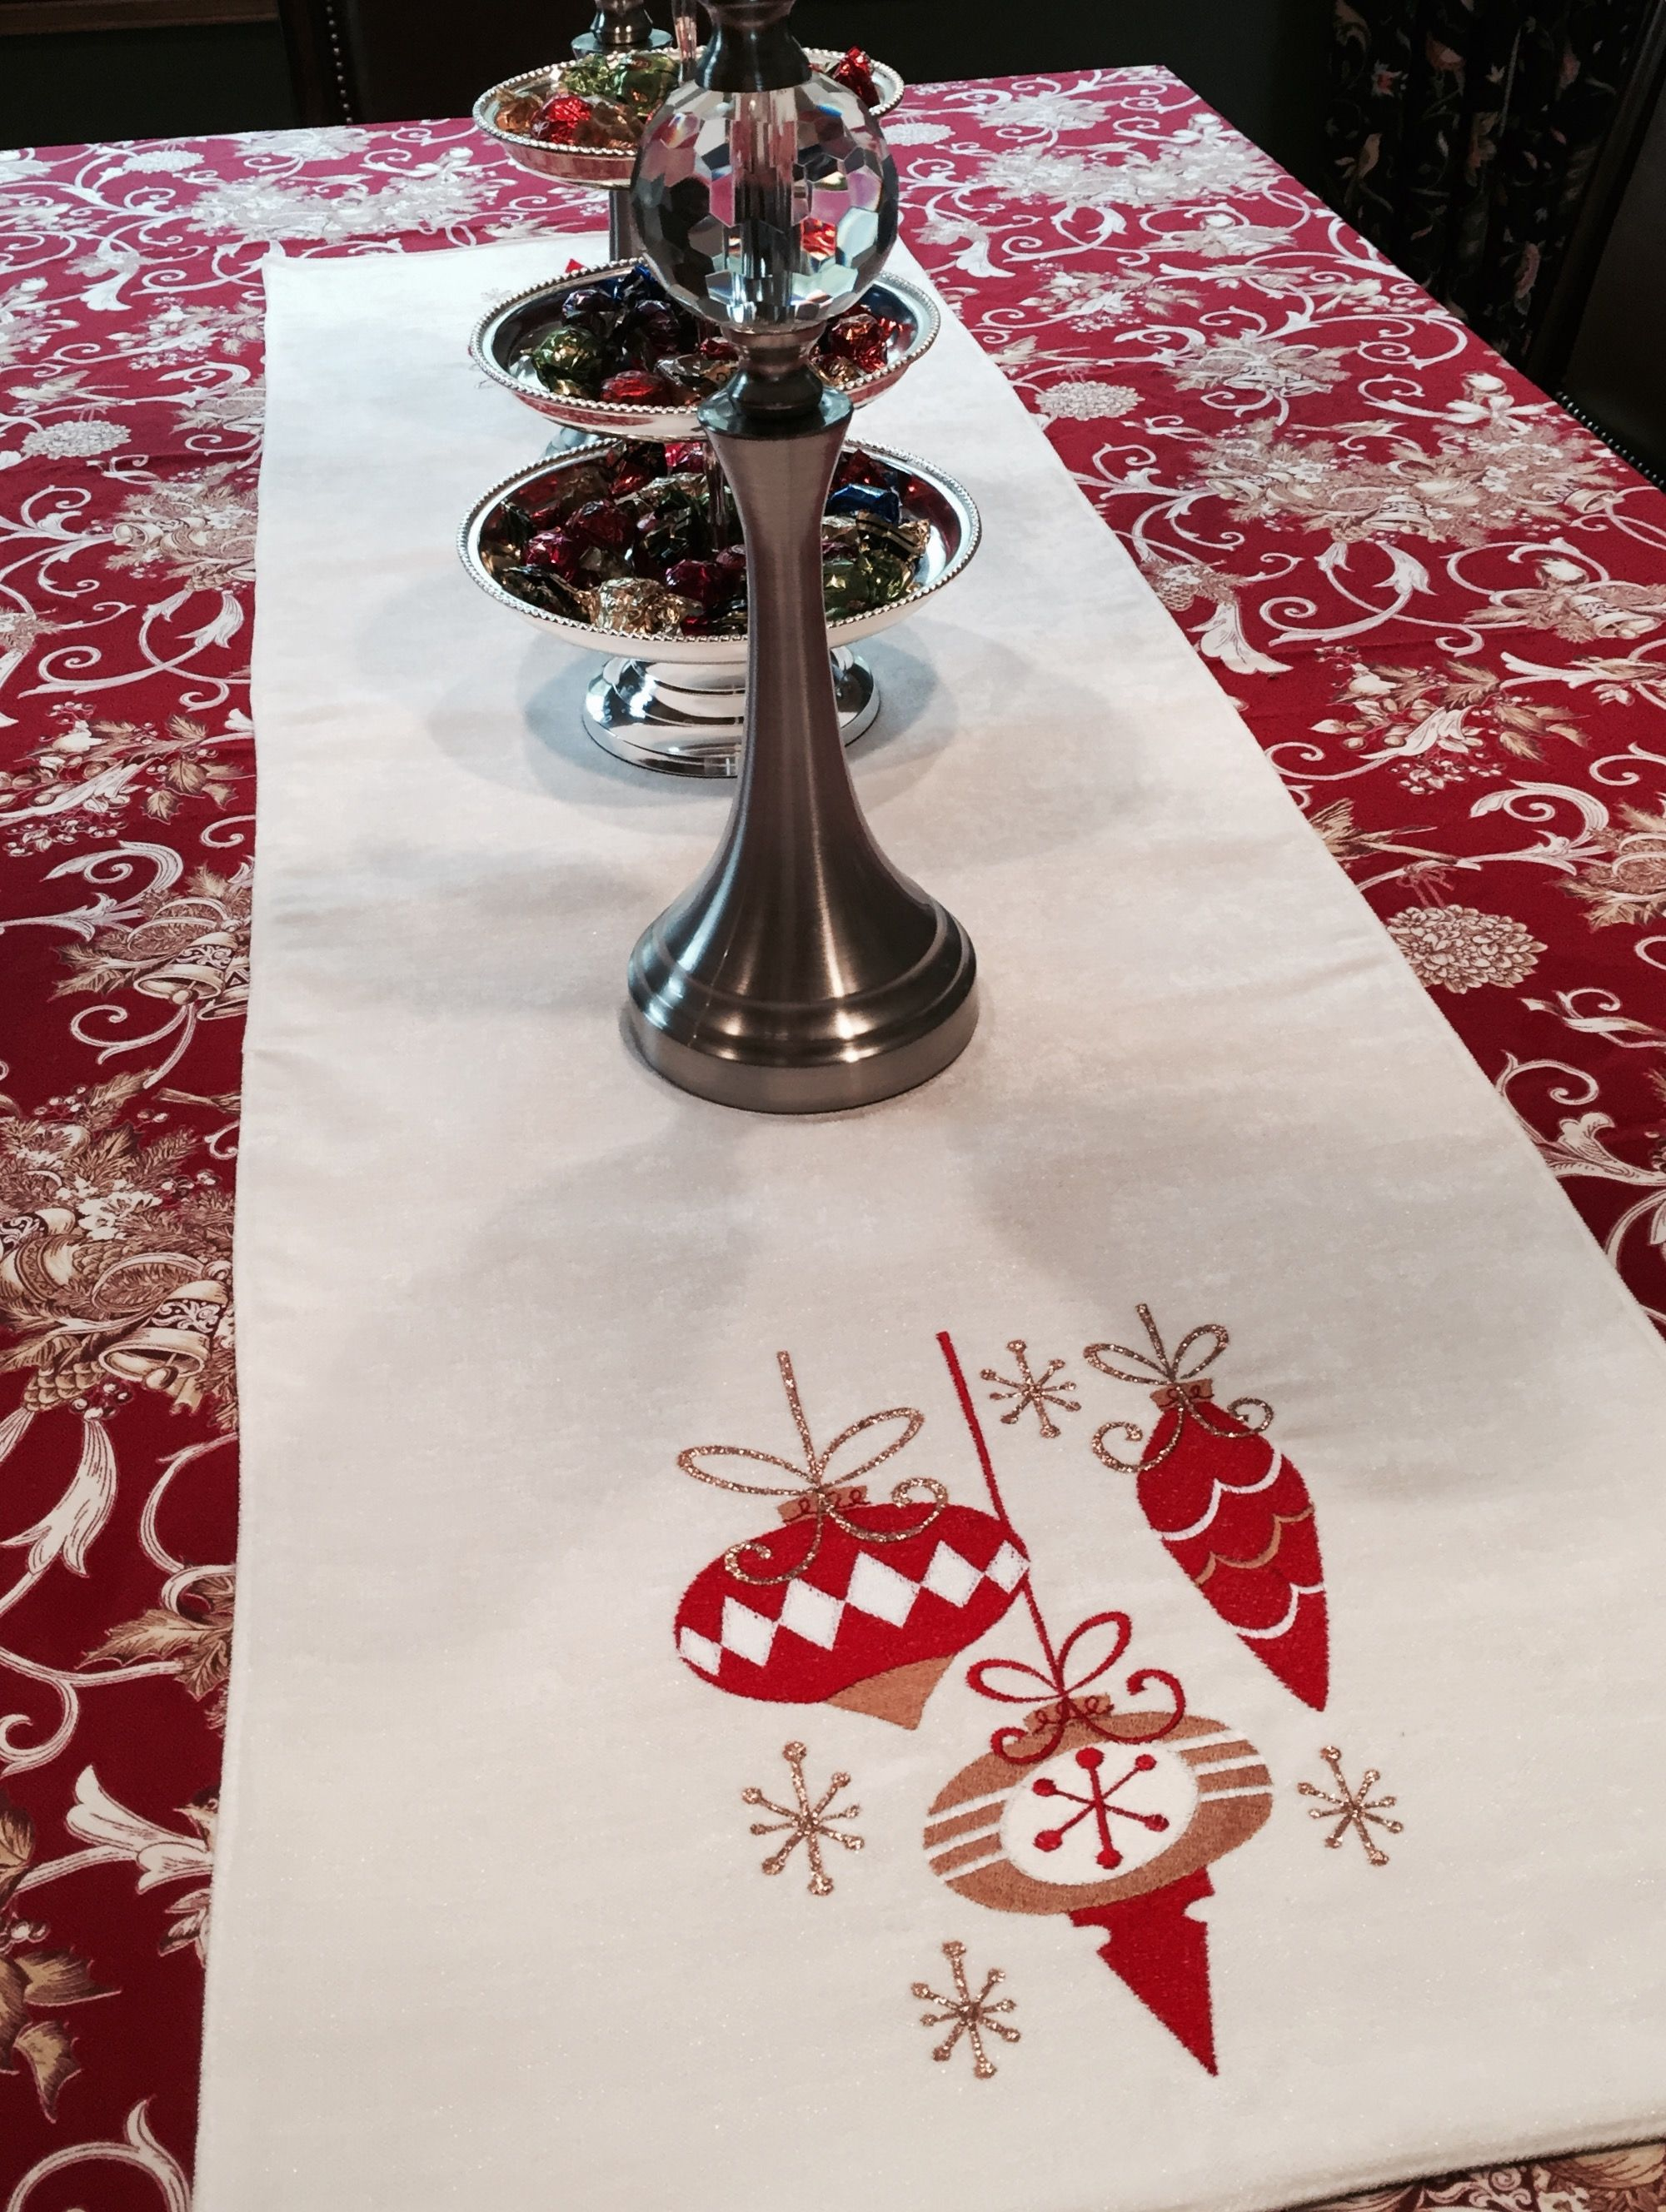 Machine Embroidered Christmas Table Runner In 2020 Christmas Table Runner Christmas Runner Christmas Embroidery